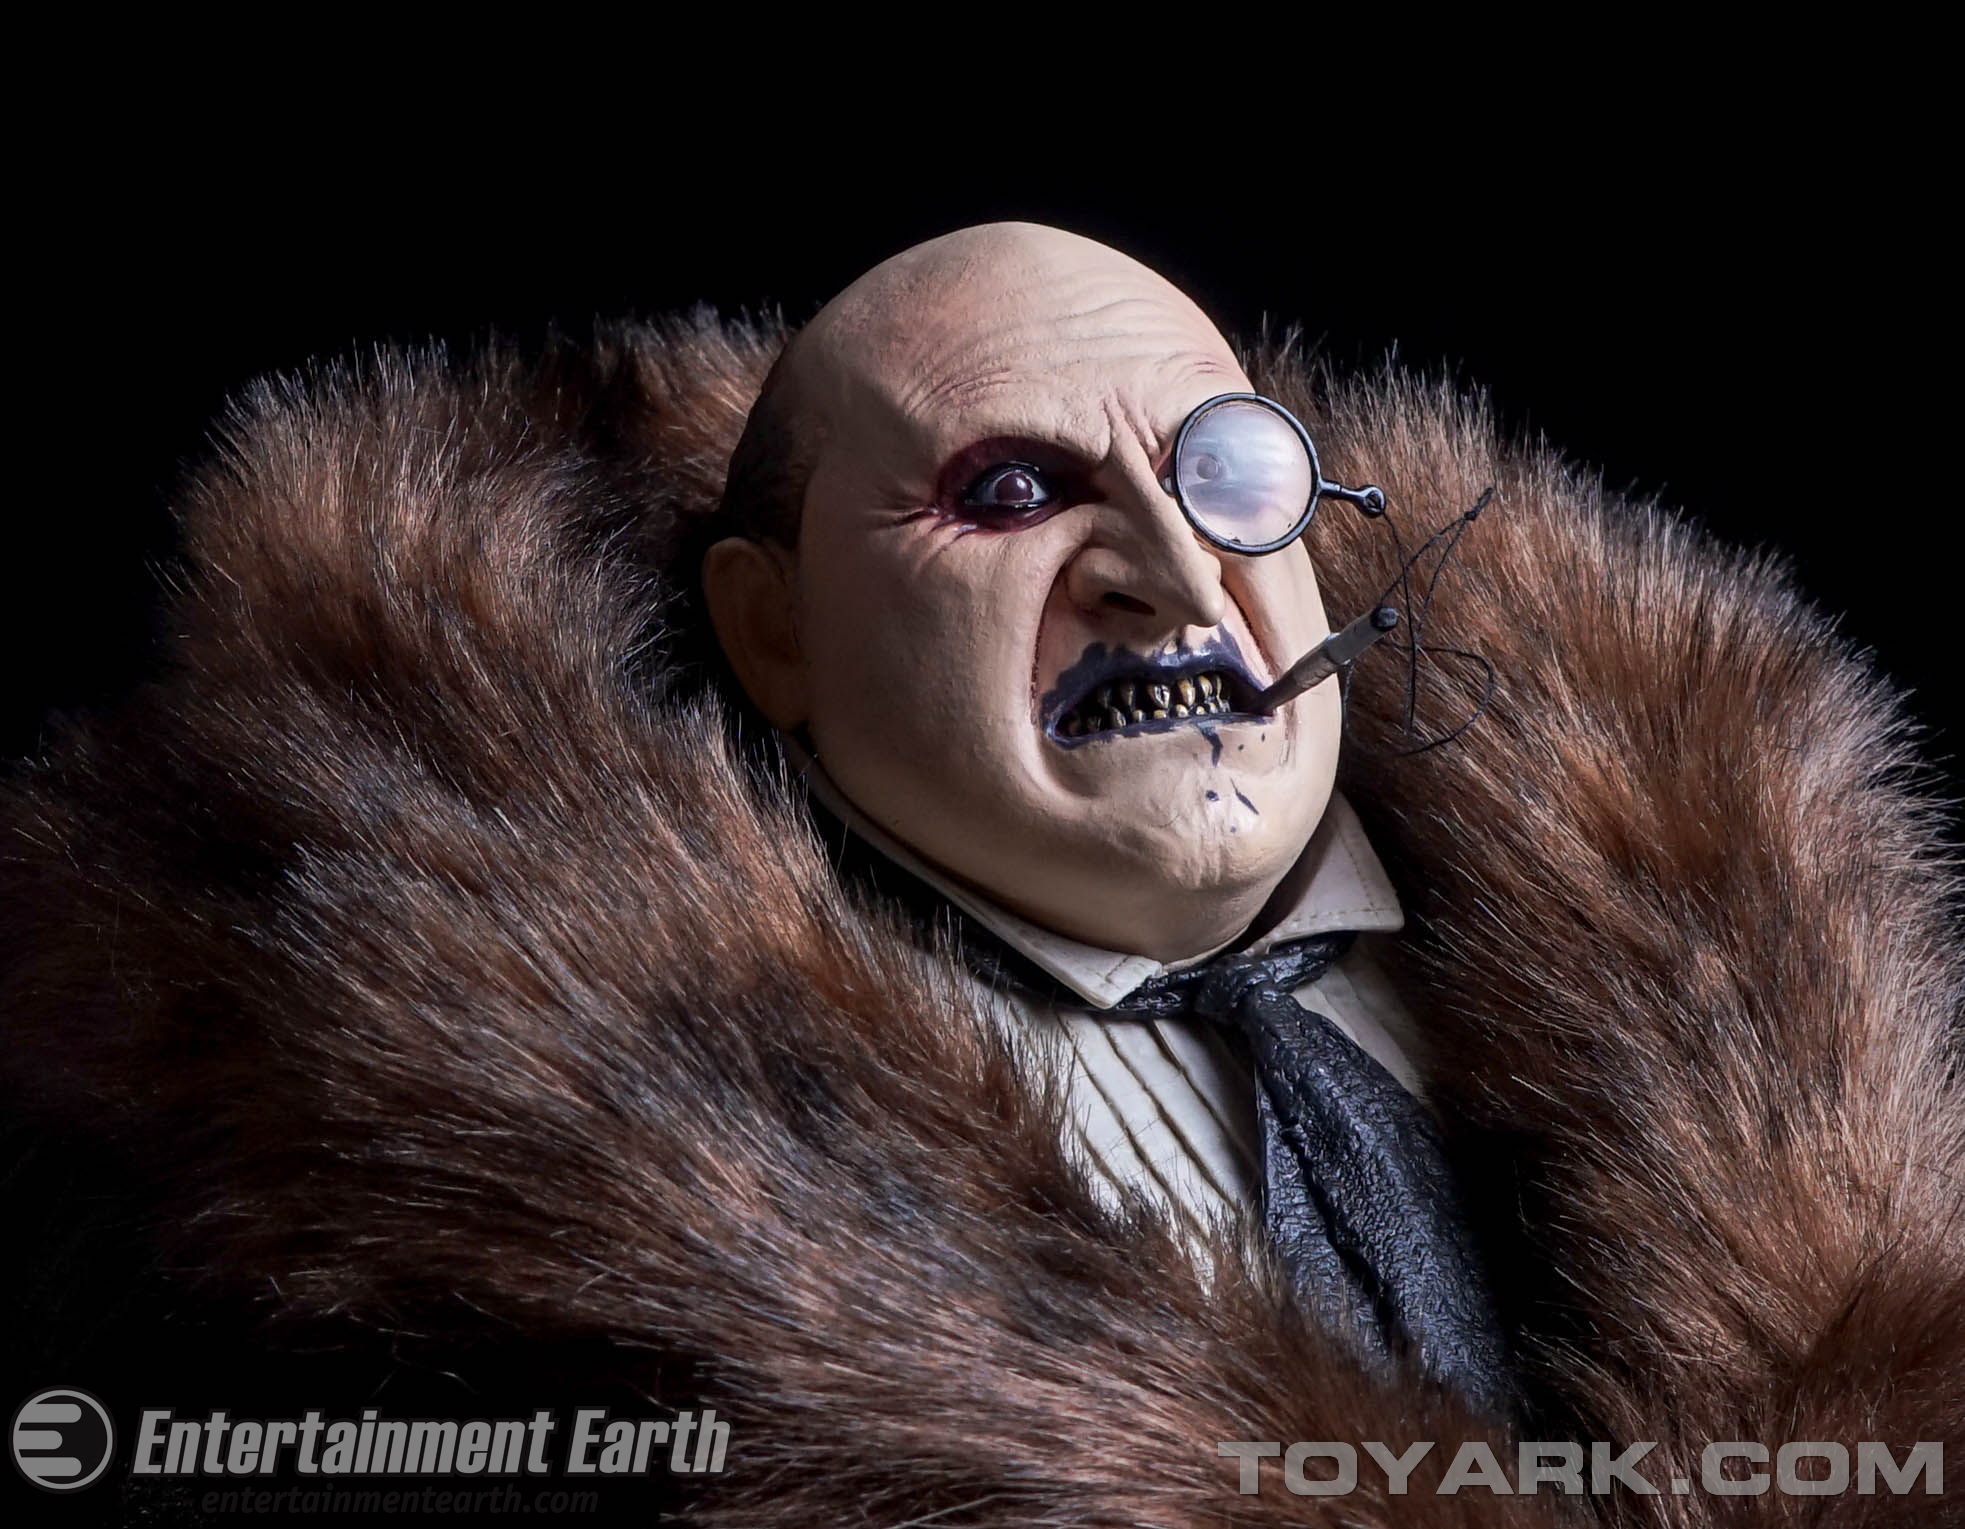 http://news.toyark.com/wp-content/uploads/sites/4/2015/09/NECA-Batman-Returns-Penguin-067.jpg